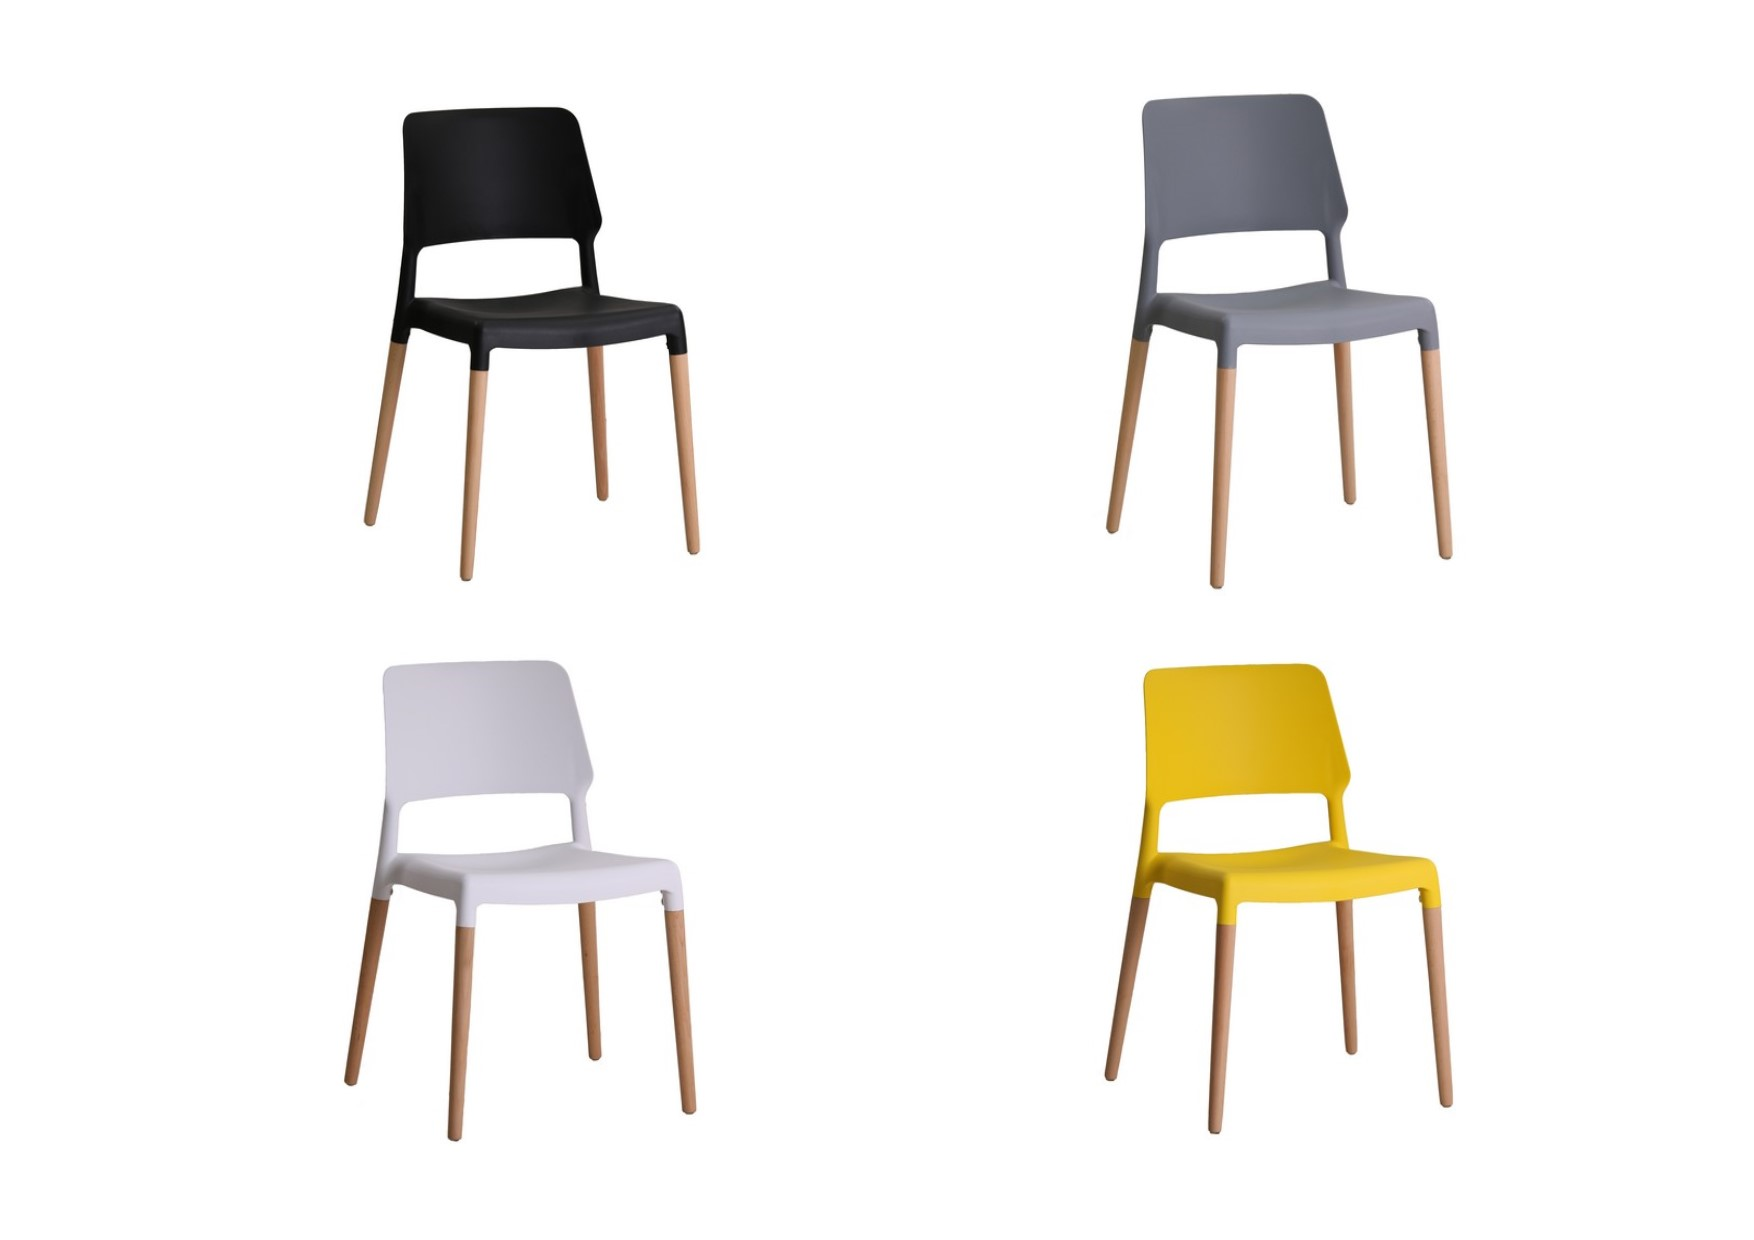 2 x LPD Riva Modern Plastic Dining Chairs - Beech Legs - Black Grey White Yellow  sc 1 st  eBay : modern plastic chair - Cheerinfomania.Com